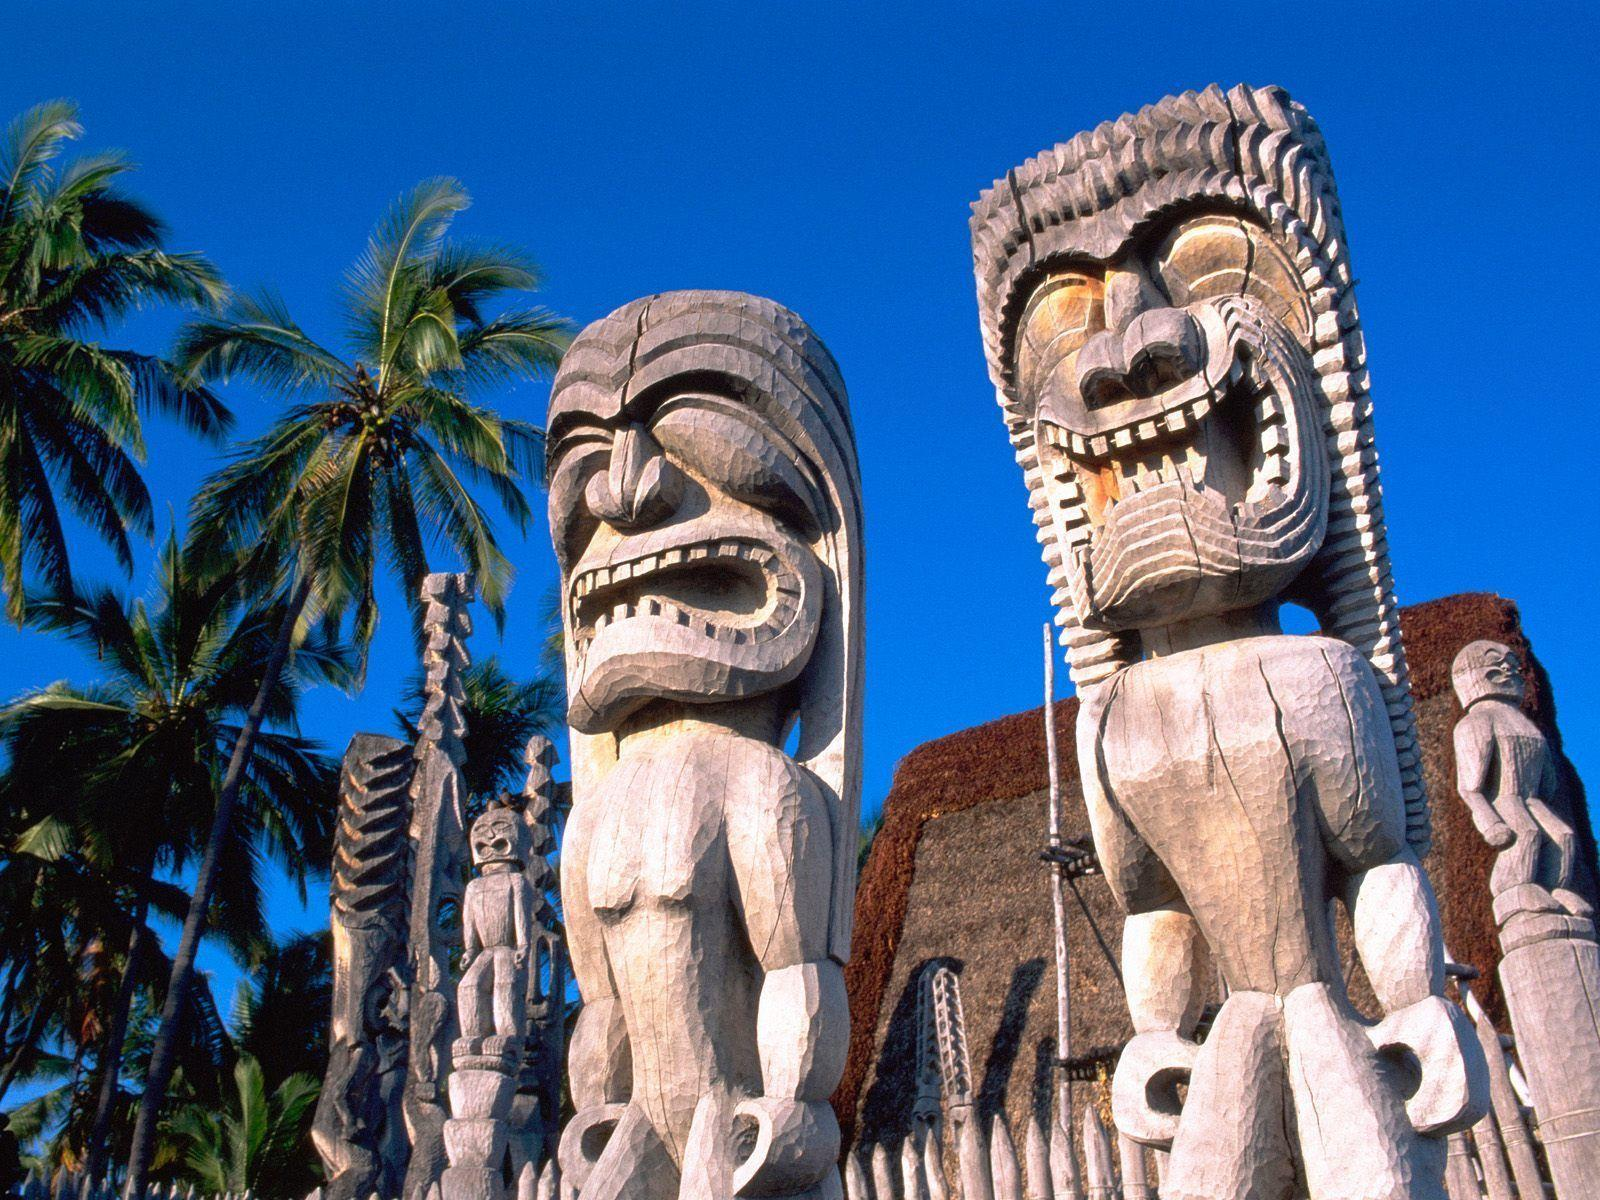 Hawaiian statuettes wallpapers and images - wallpapers, pictures ...